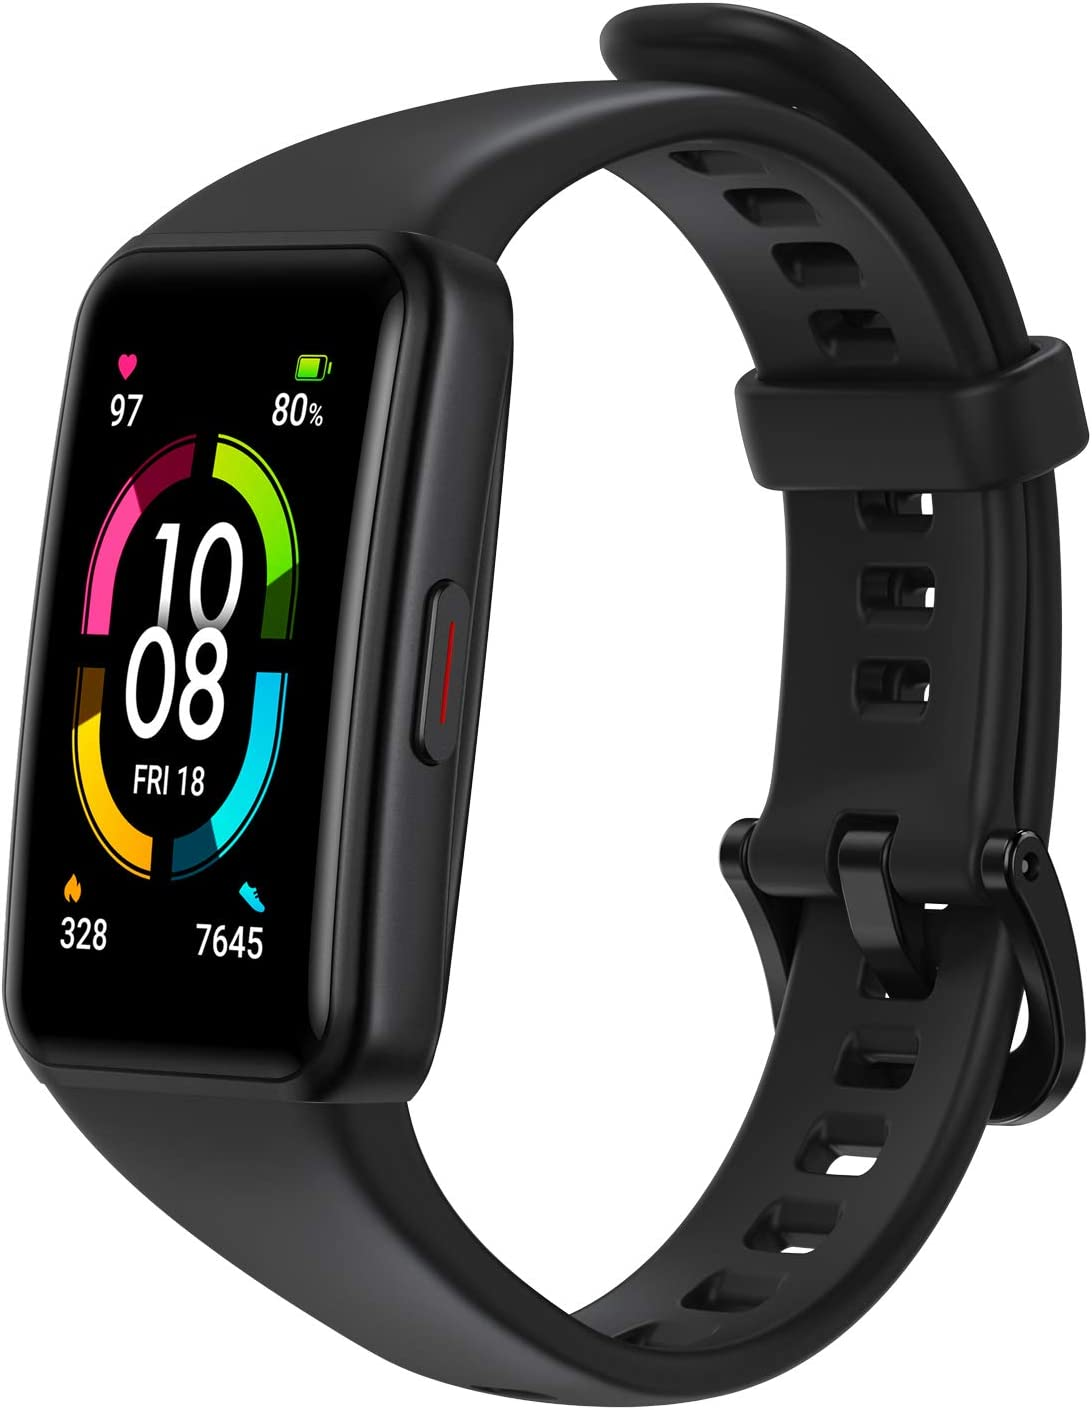 HONOR Band 6 Smart Watch Fitness Tracker Watches for Men Women,1.47